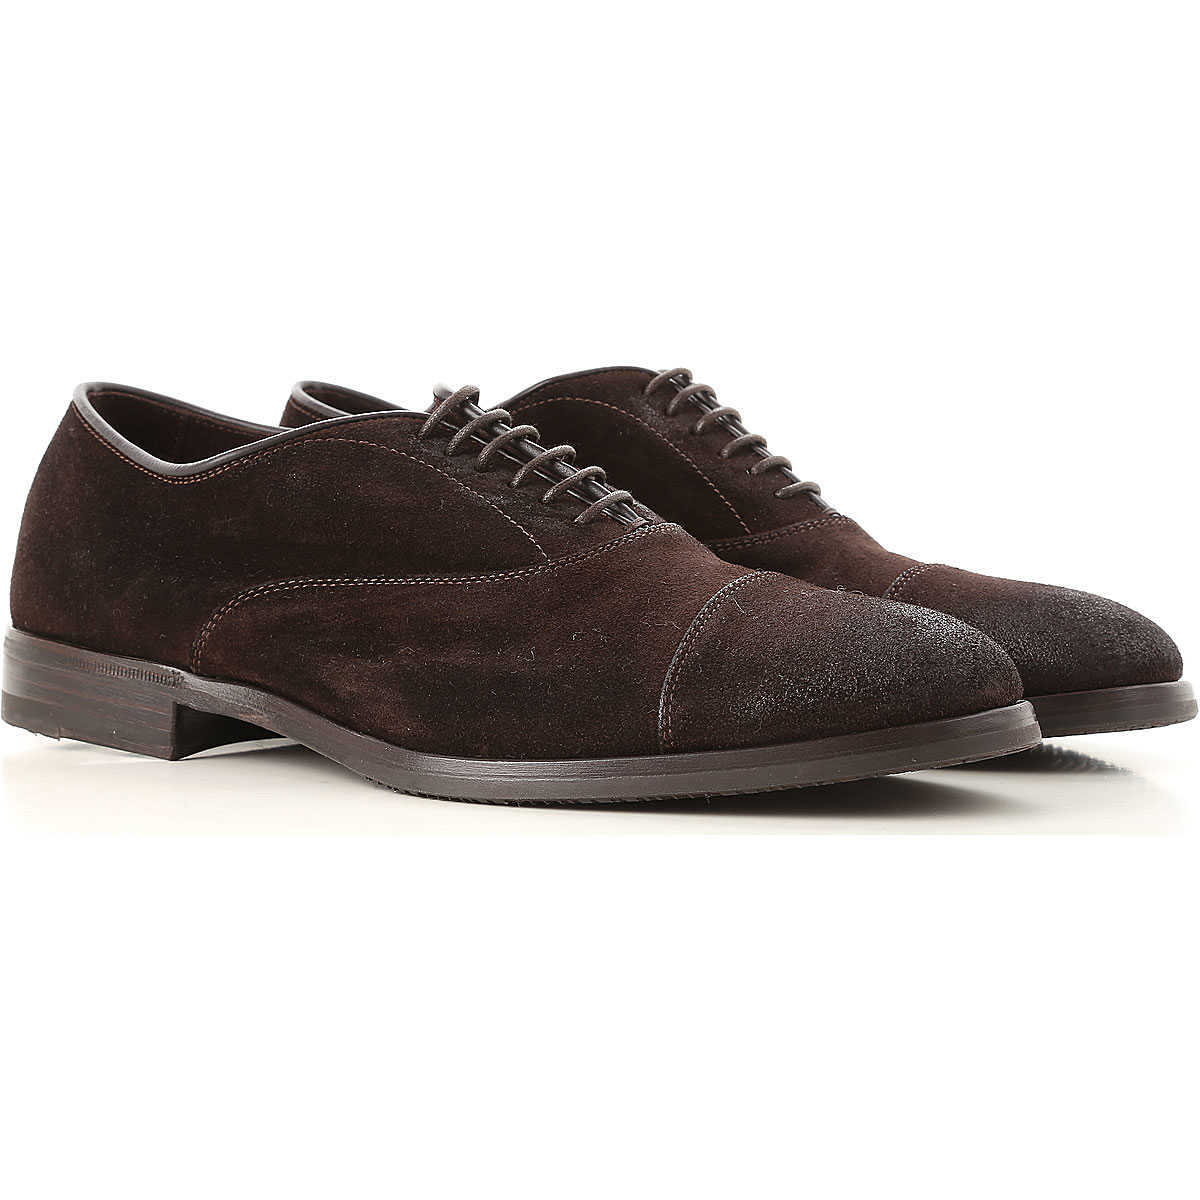 Henderson Lace Up Shoes for Men Oxfords 10 10.5 6 7.5 8 8.5 9 9.5 Derbies and Brogues On Sale UK - GOOFASH